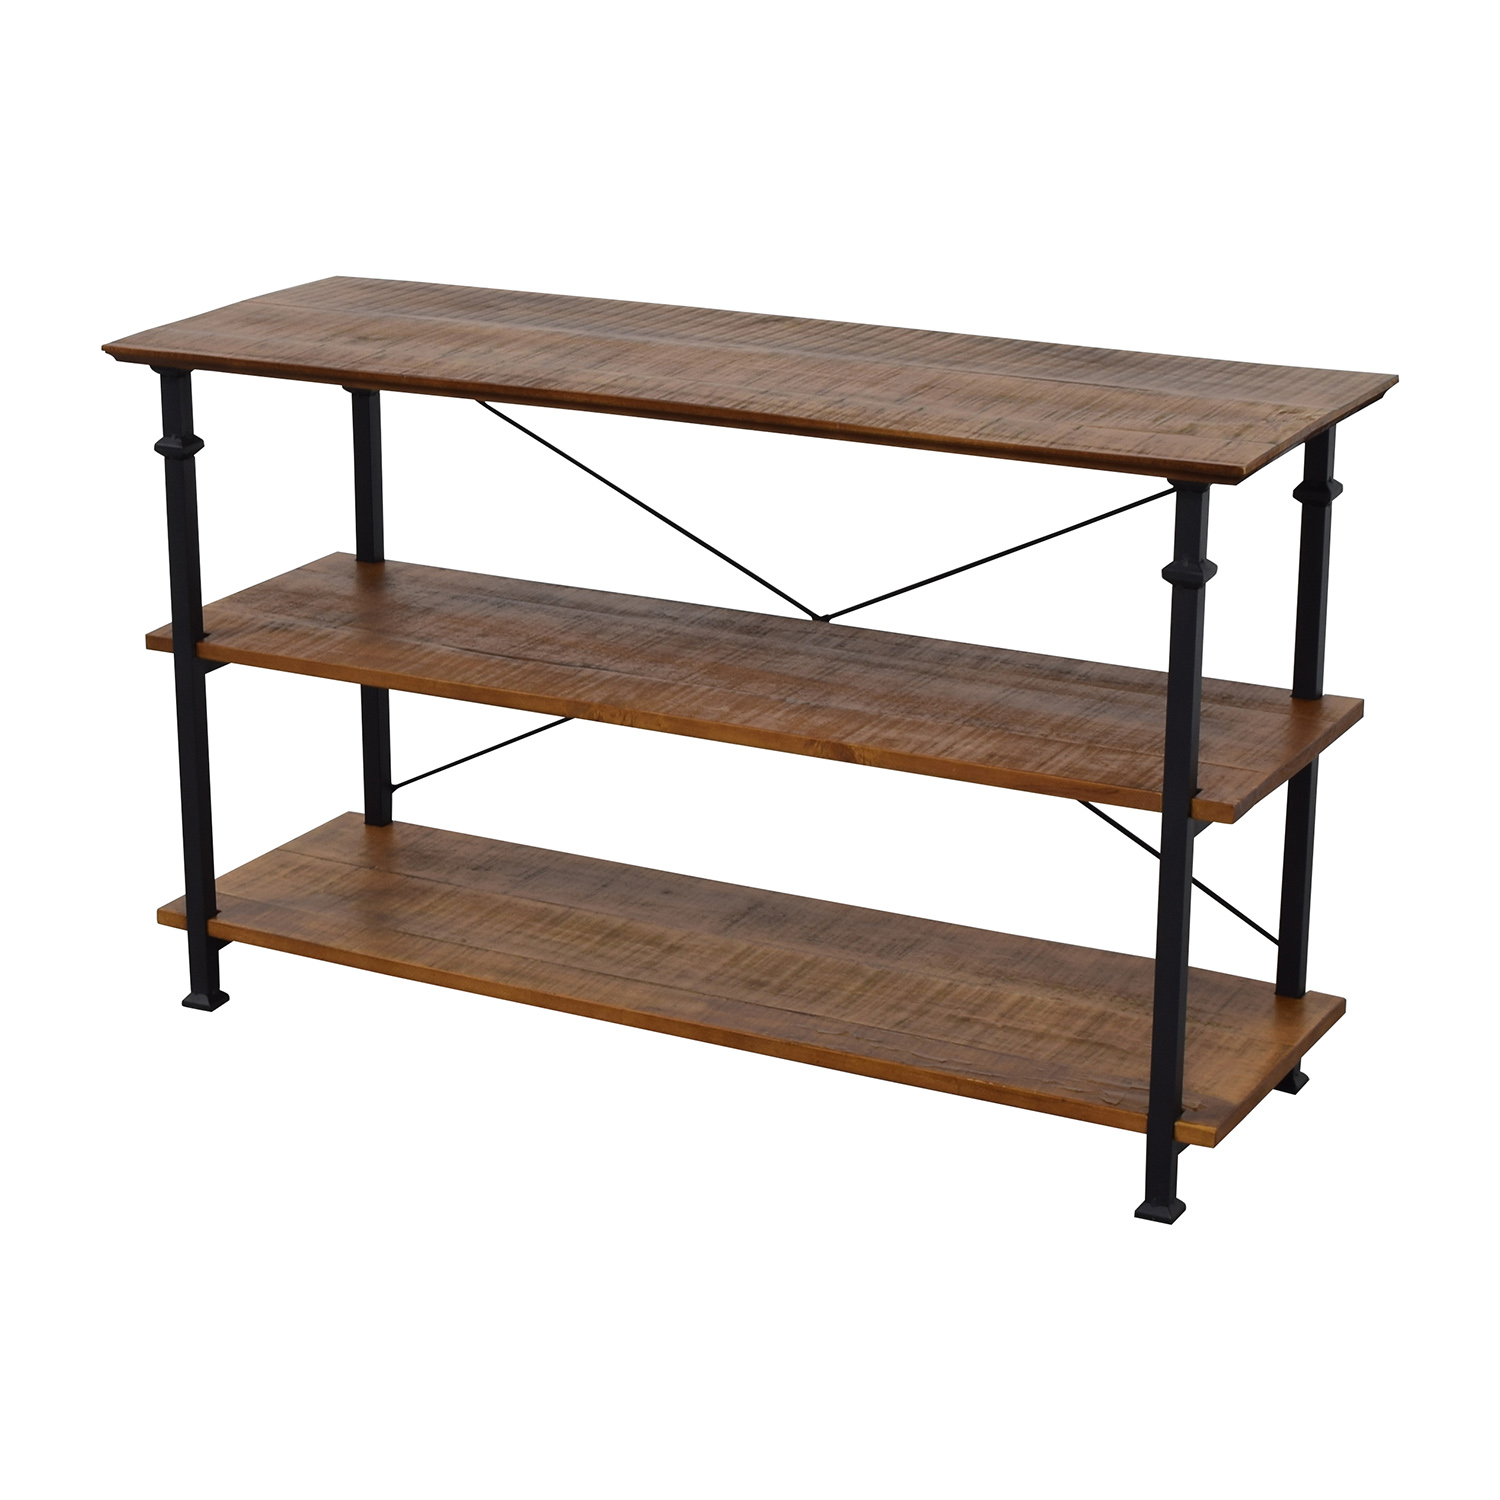 47 Off Wayfair Wayfair Rustic Wood And Metal Bookcase